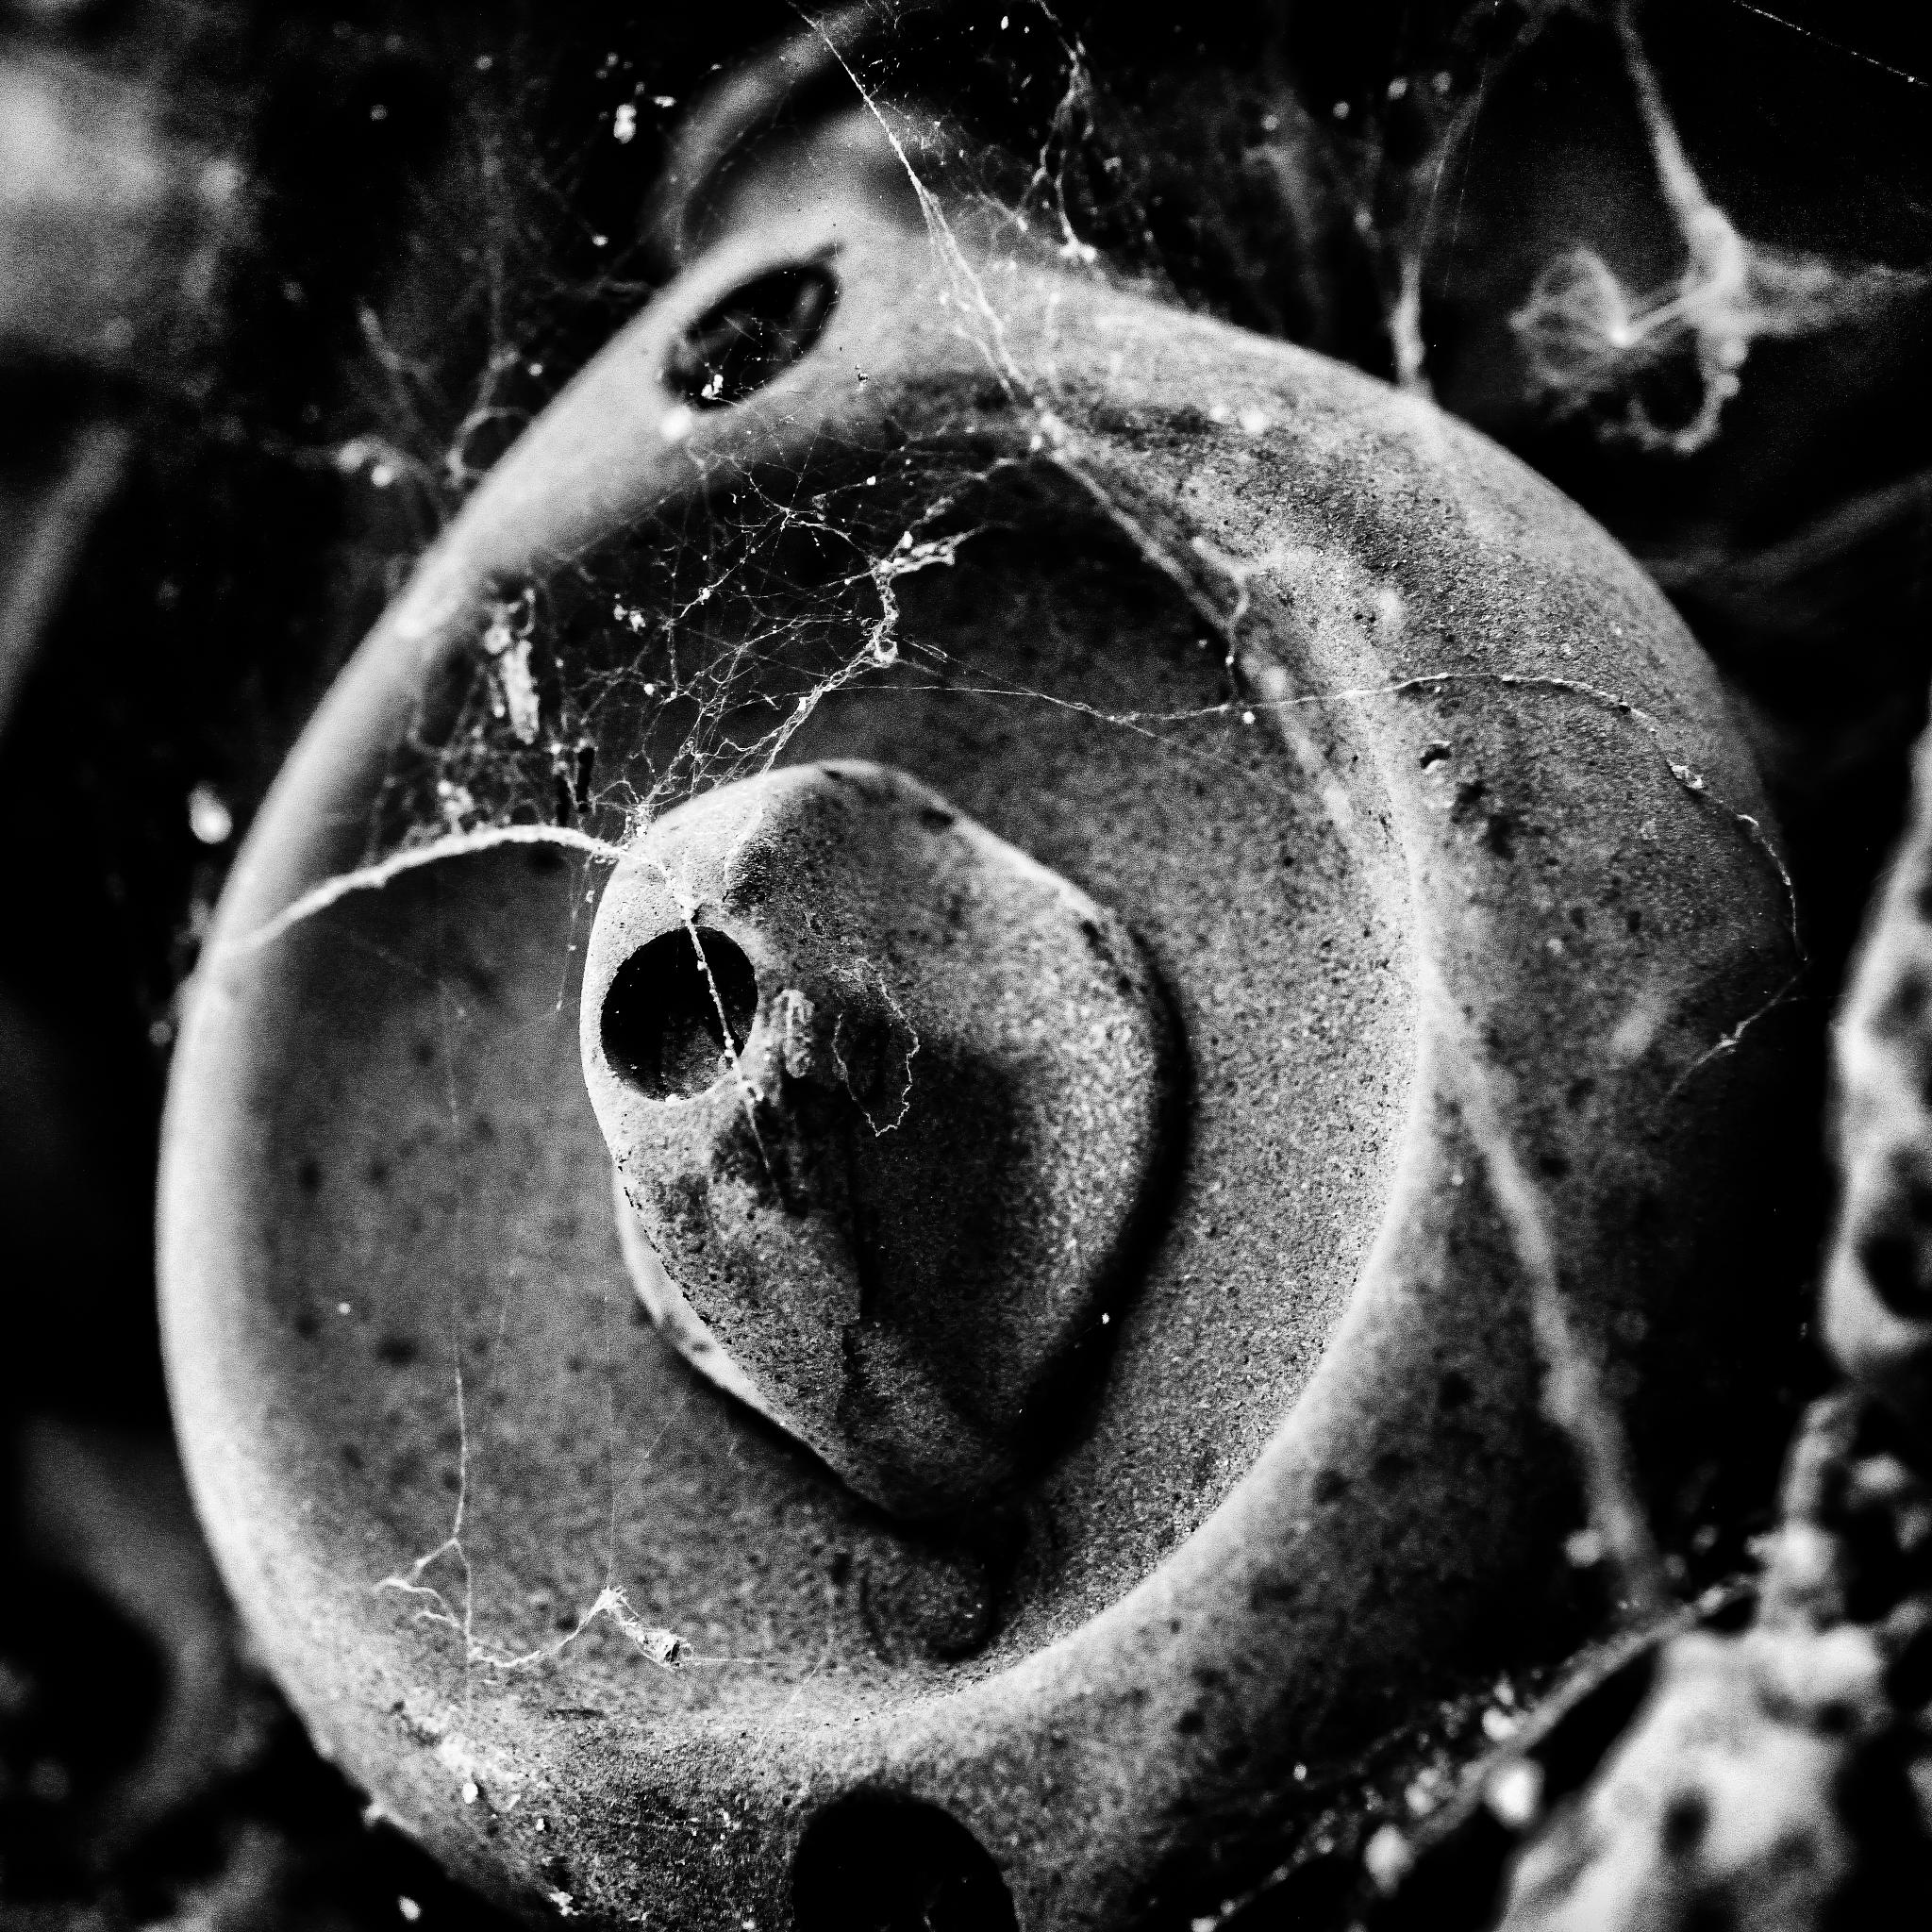 switch by Robert Glöckner